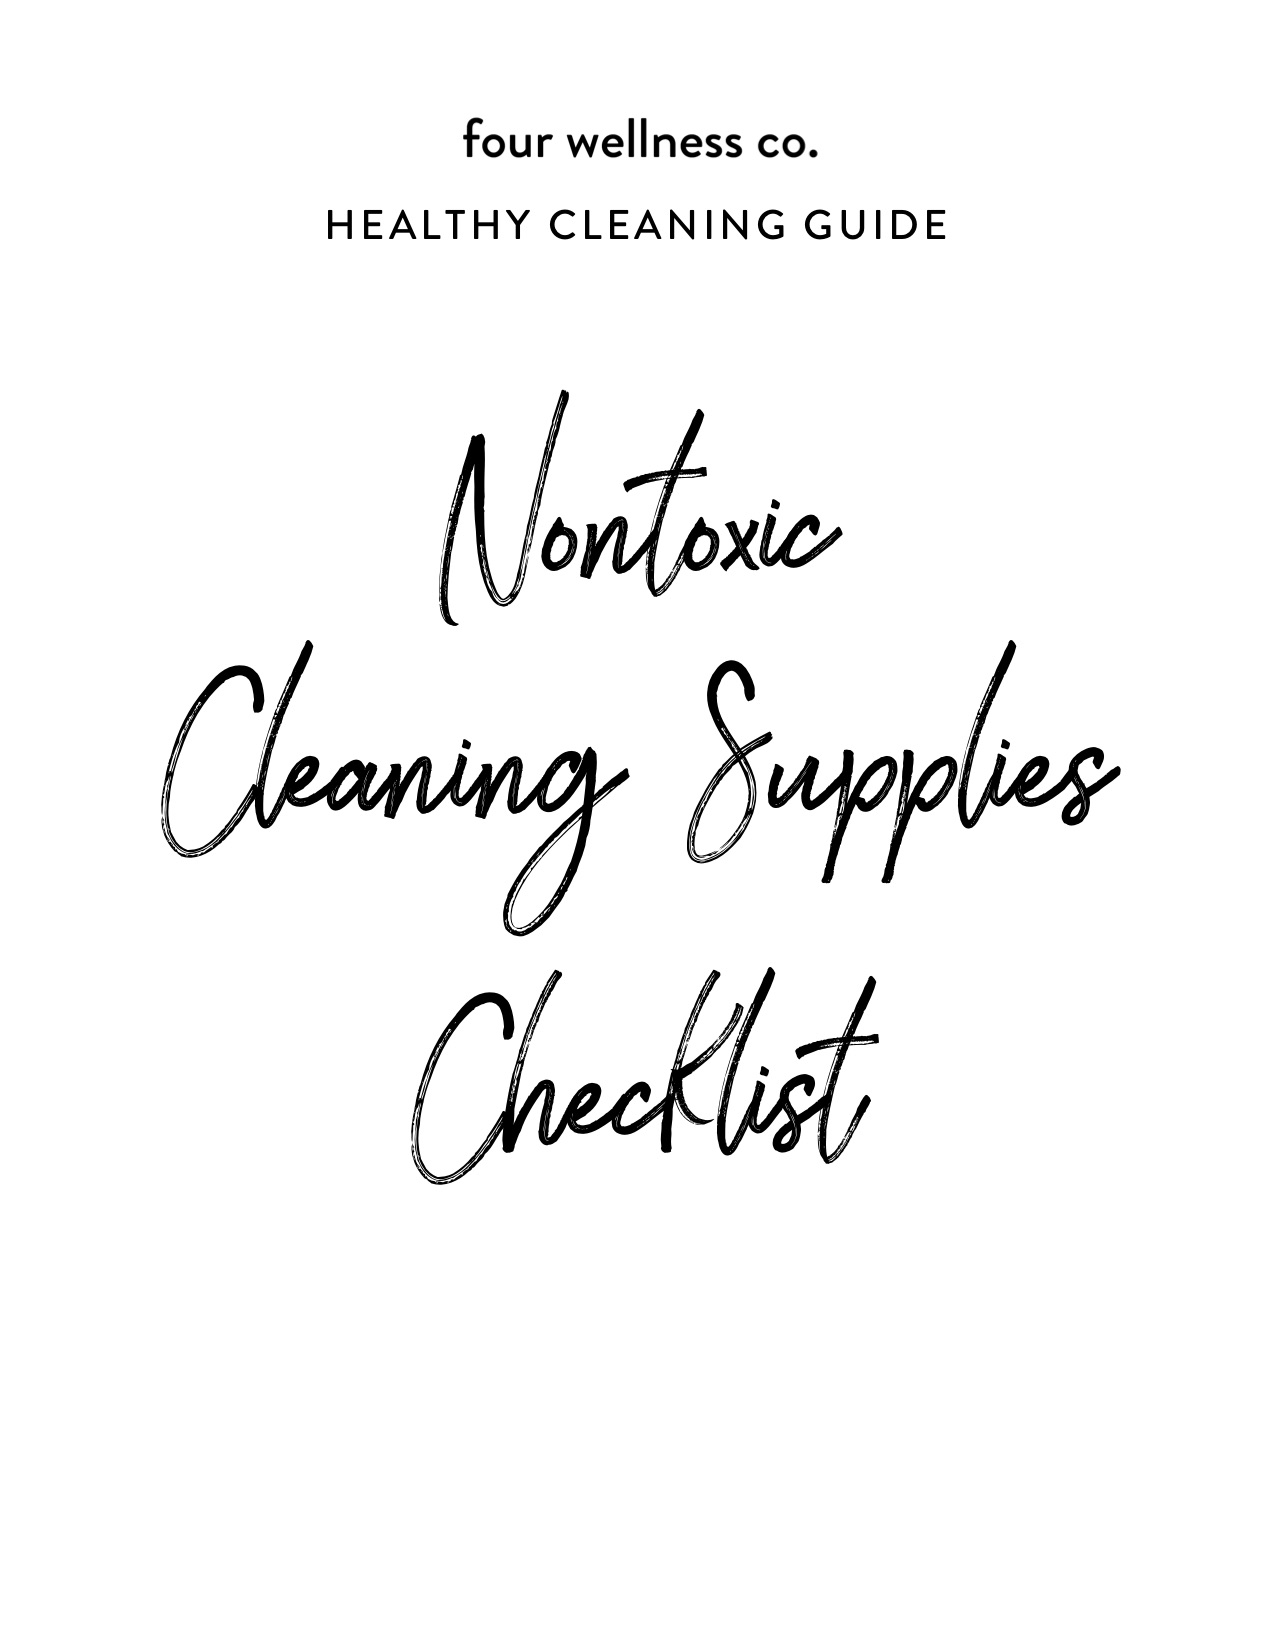 Healthy Cleaning Guide // Nontoxic Cleaning Supplies Checklist // Get the full guide to chemical-free cleaning for a healthy home at fourwellness.co/healthy-cleaning-guide #cleaning #nontoxic #healthyhome